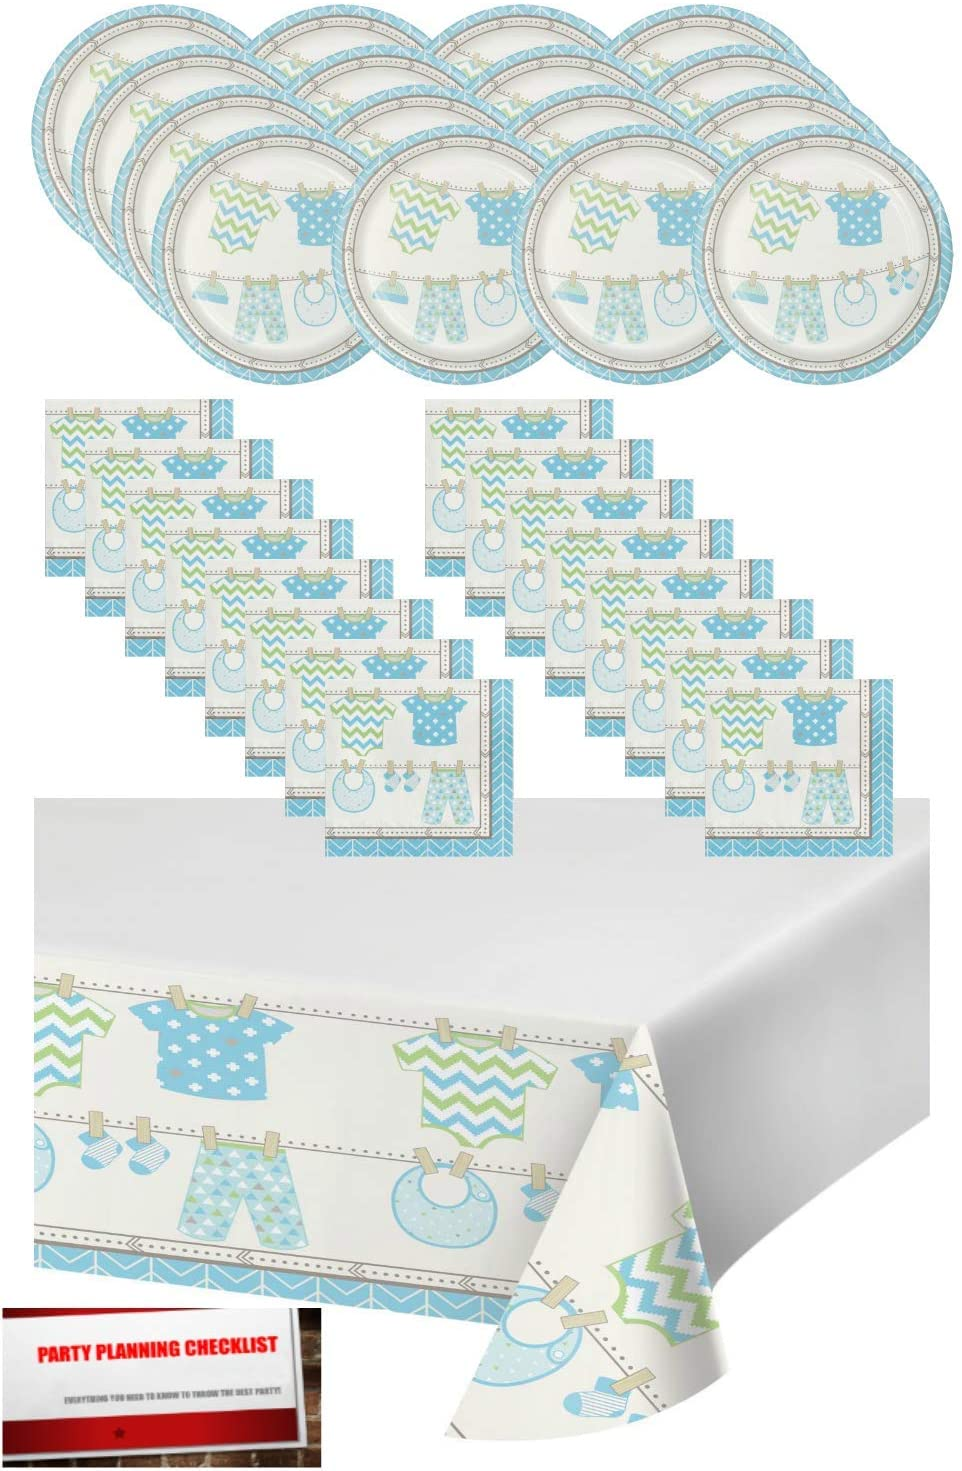 Blue Boy Baby Shower Party Supplies Bundle Pack for 16 - Plates, Napkins and Table Cover (Plus Party Planning Checklist by Mikes Super Store) (Boy Blue)